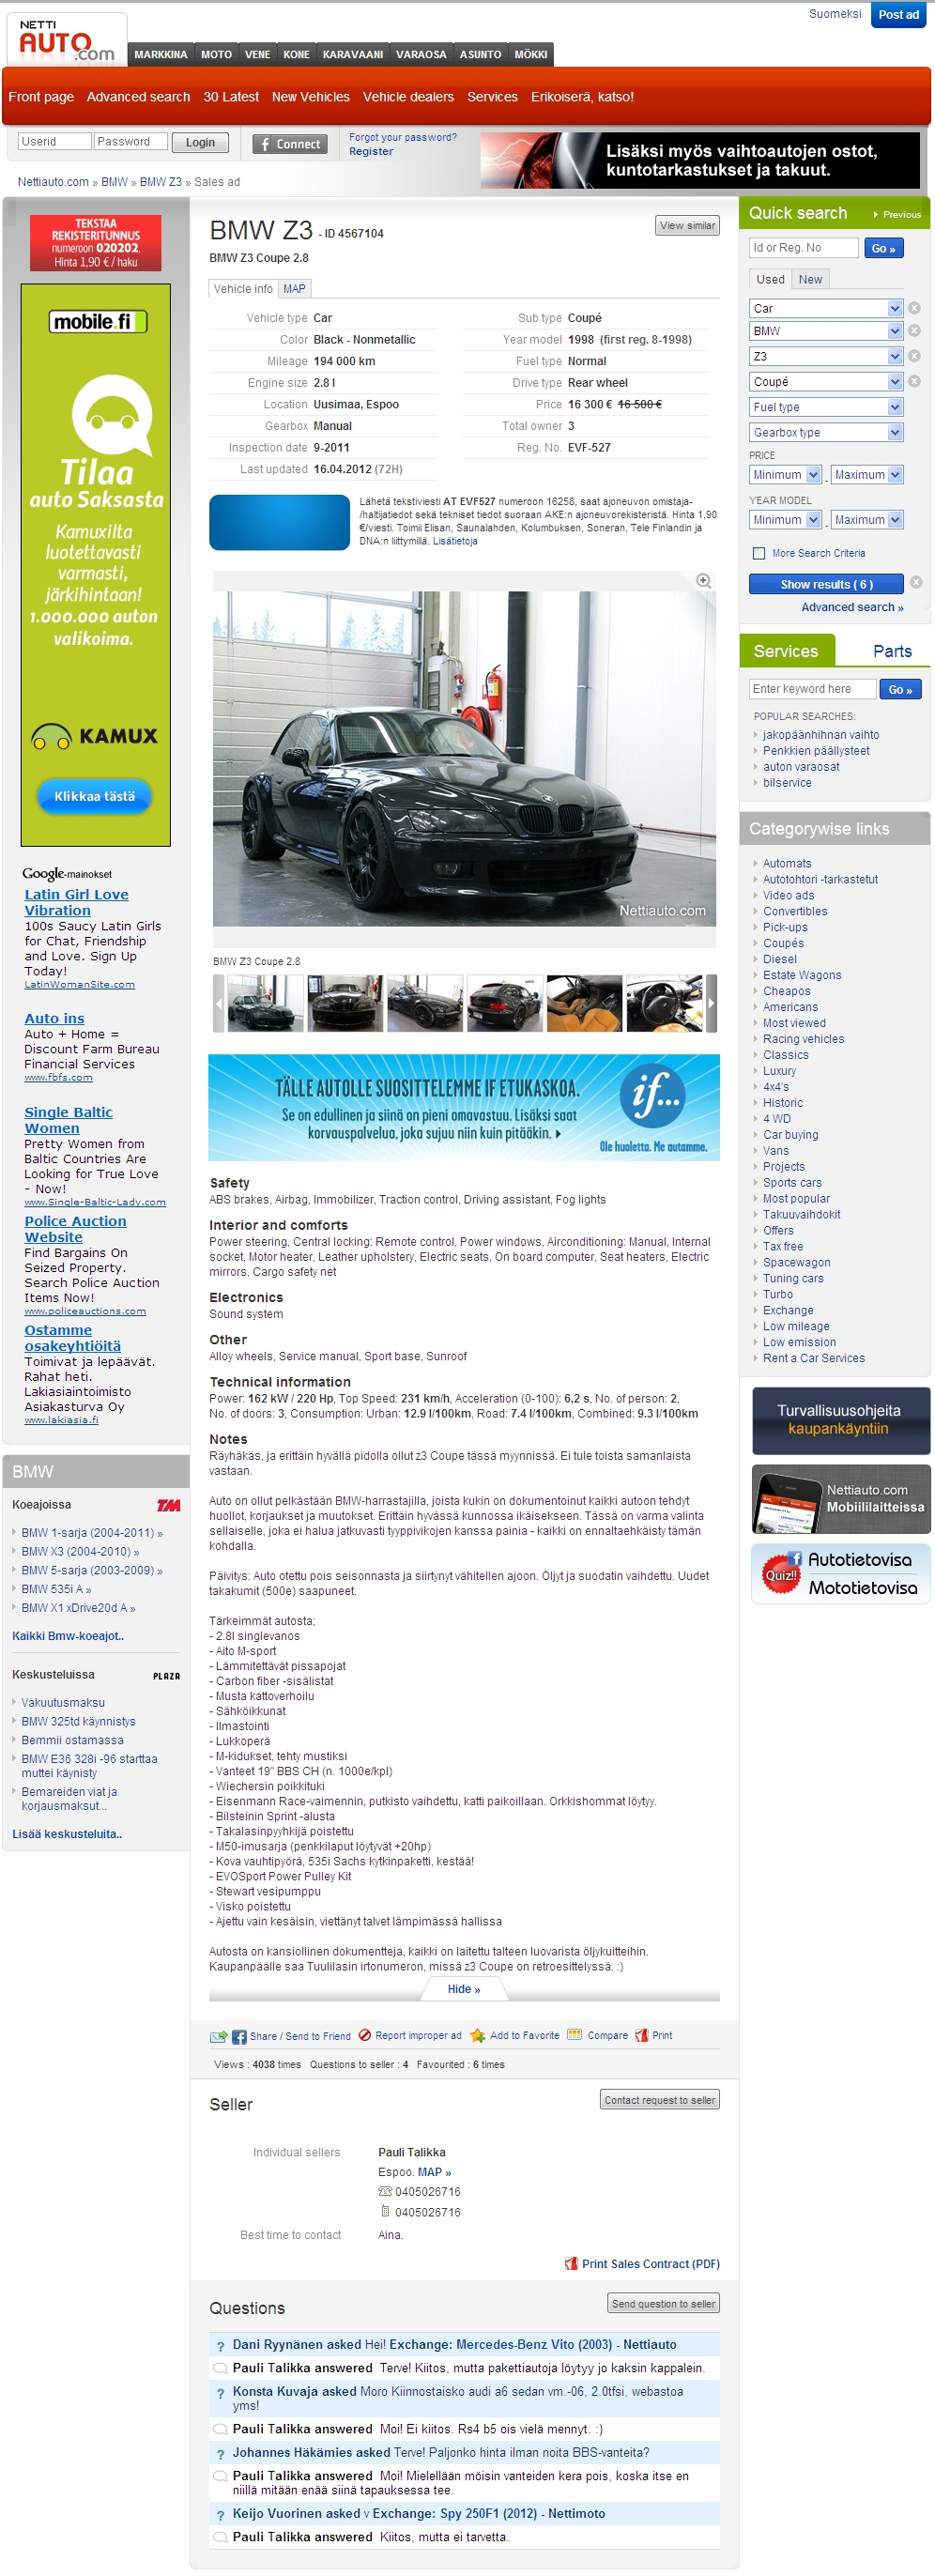 1998 Z3 Coupe | Jet Black | Walnut | Finland | Ad Screenshot